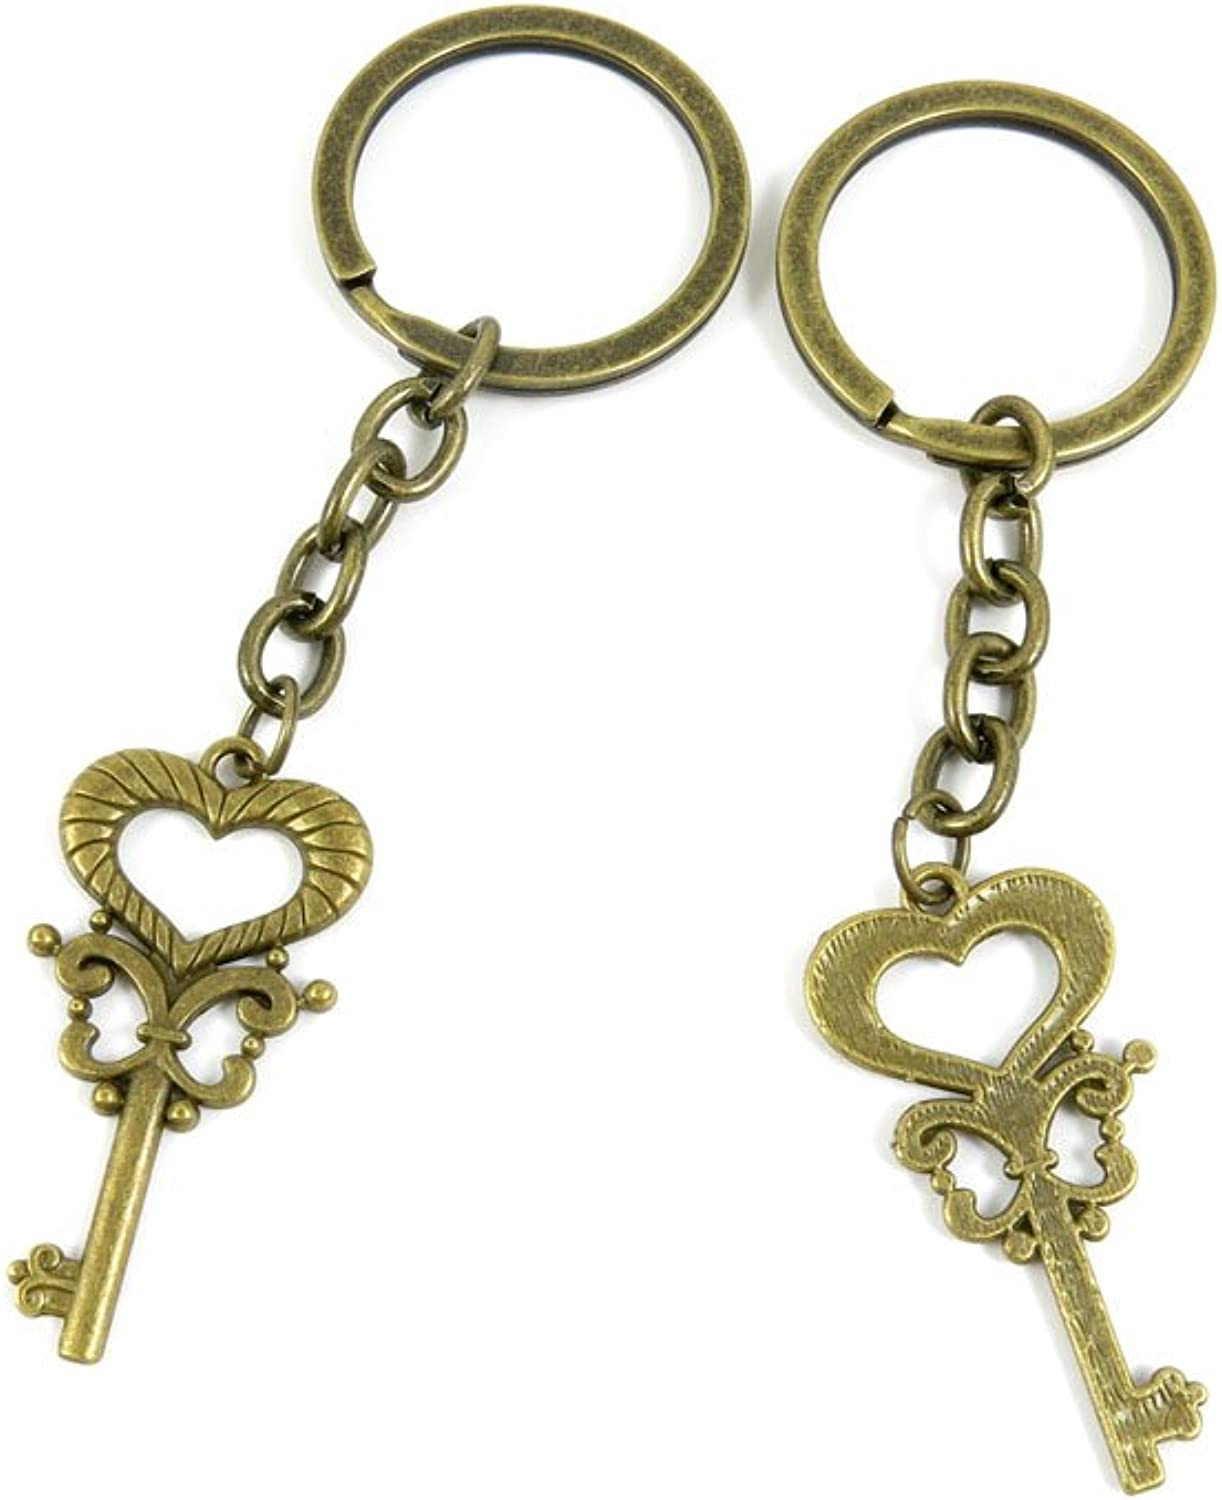 100 PCS Keyrings Keychains Key Ring Chains Tags Jewelry Findings Clasps Buckles Supplies N3NR1 Heart Key